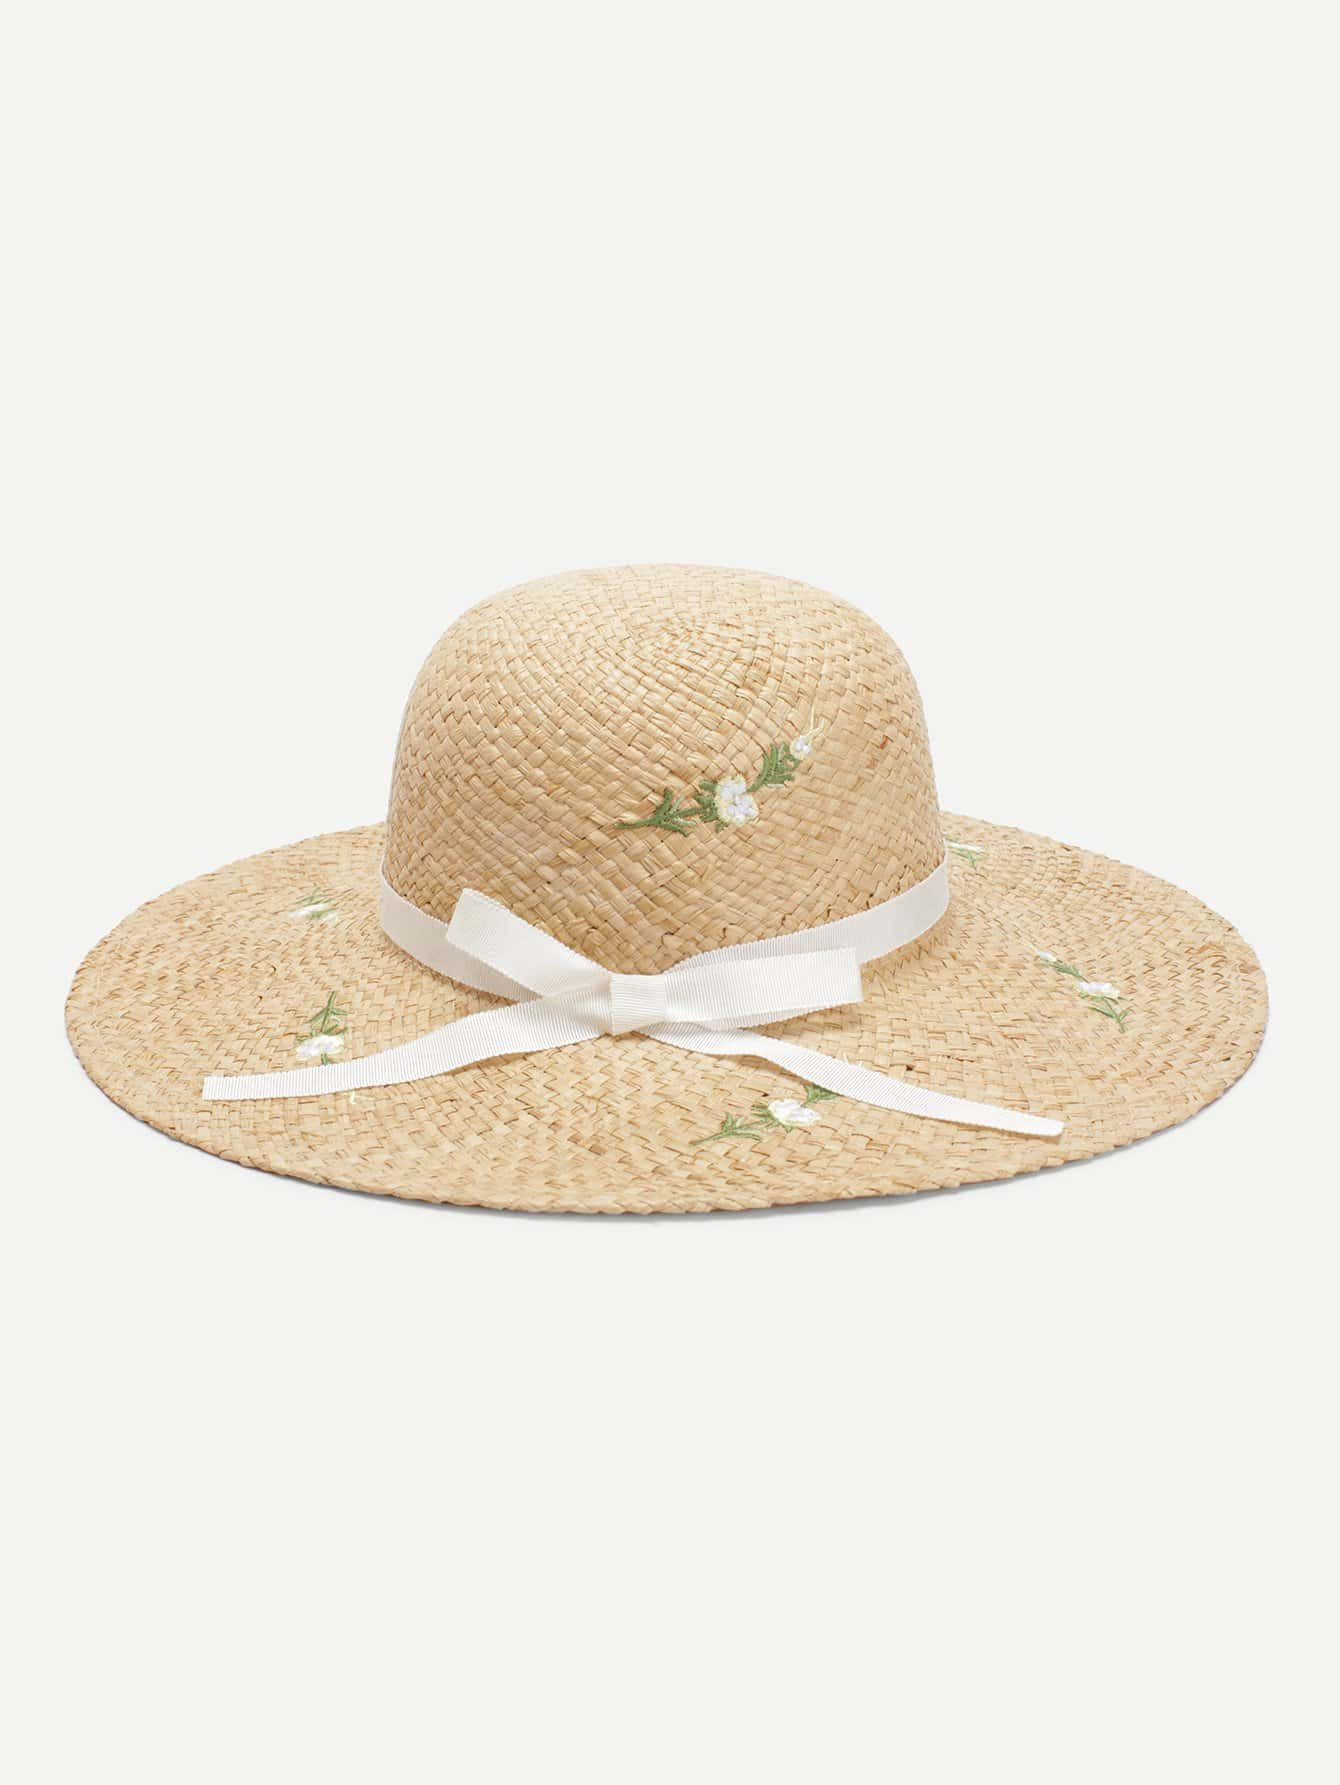 Bow Band Flower Decorated Straw Hat bird decorated straw hat